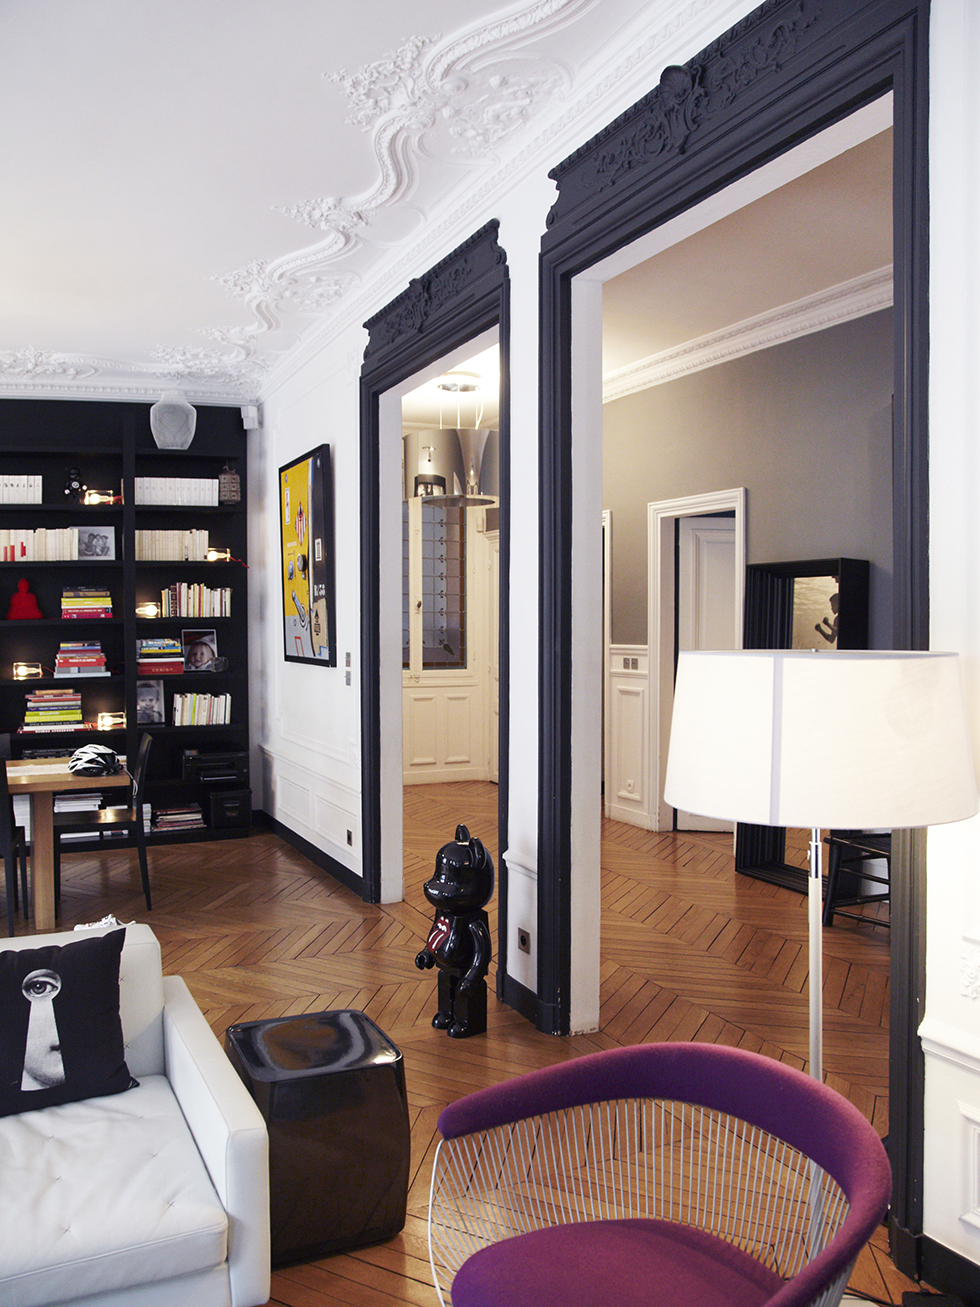 Un int rieur parisien so chic frenchyfancy 2 frenchy fancy - Peinture appartement haussmannien ...